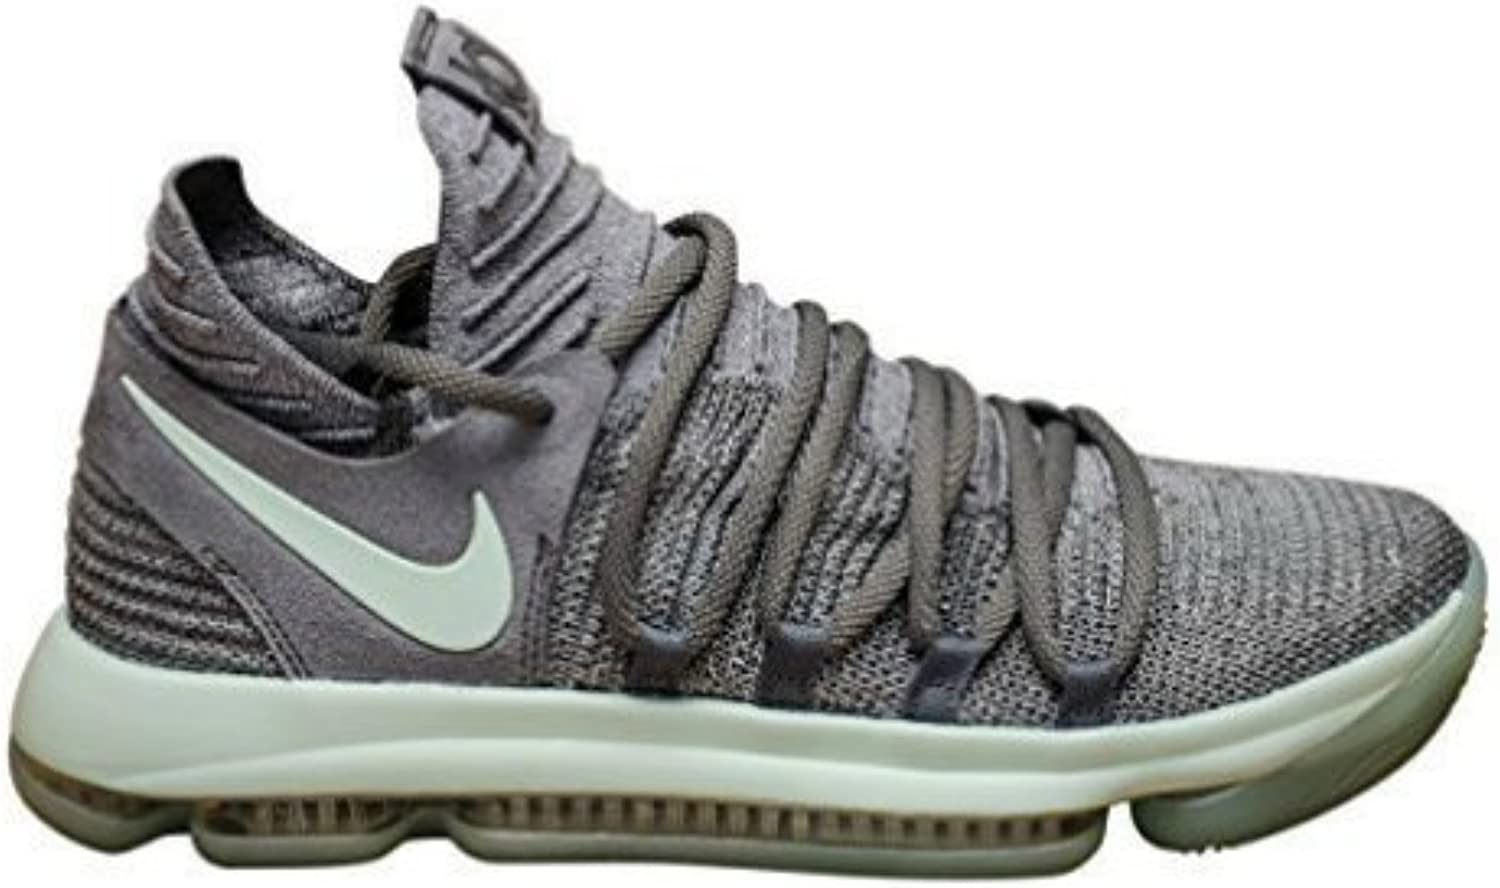 Nike Mens Zoom KD 10 X Mens Basketball Sneakers New, Cool Grey Igloo White 897815-002 (10.5)